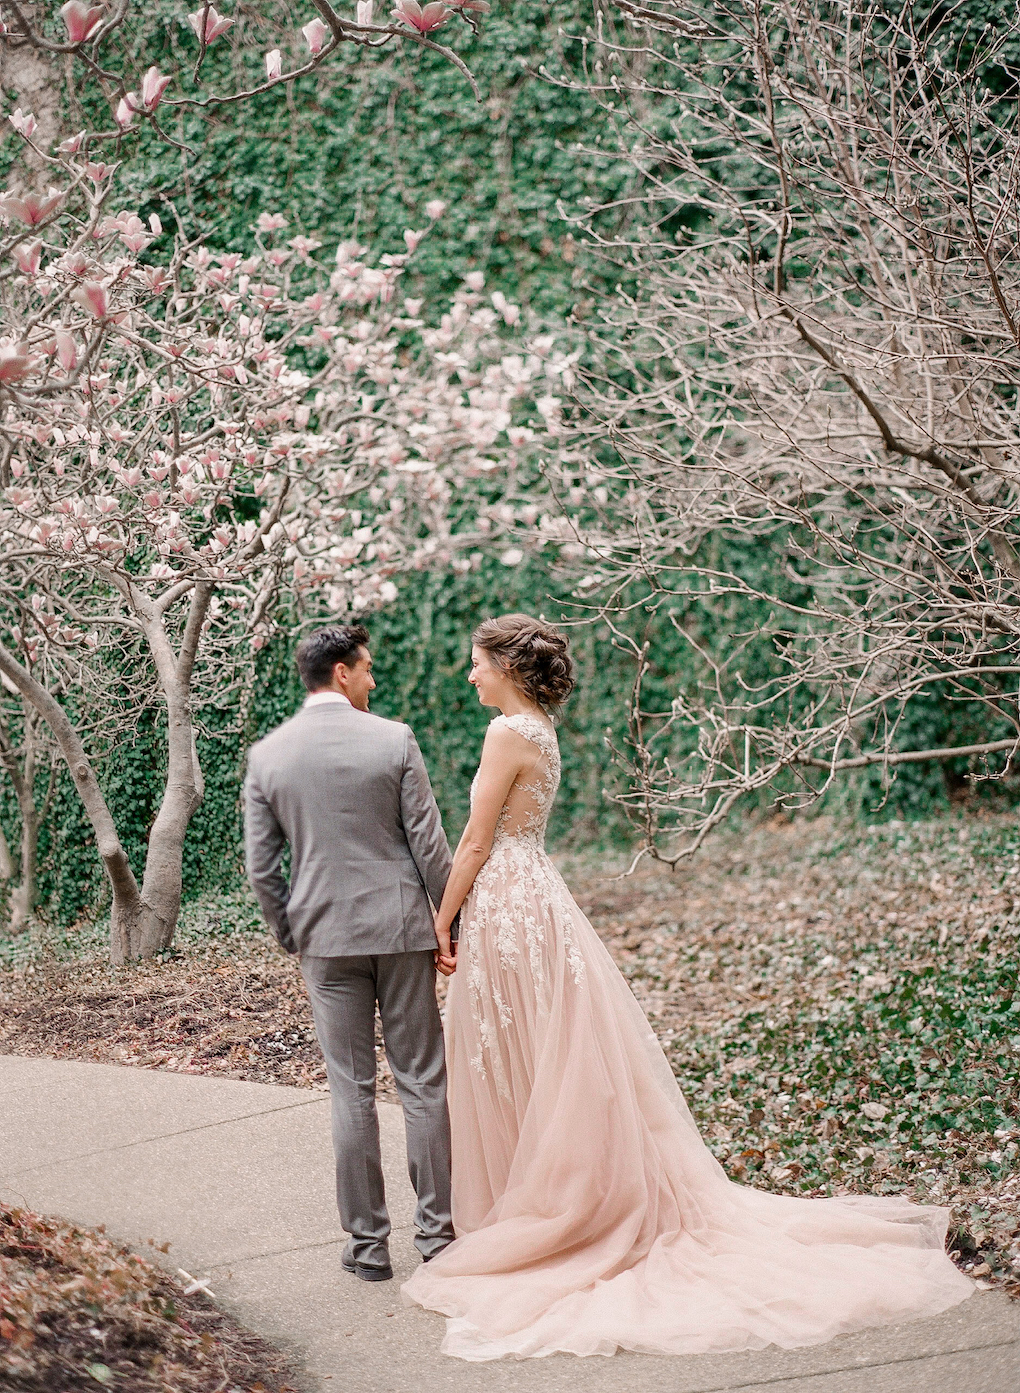 Blush wedding dress: Soft and Subtle Palettes of Spring Blossoms | Editorial Shoot at The Renaissance Pittsburgh by Exhale Events. See more inspiration at exhale-events.com!